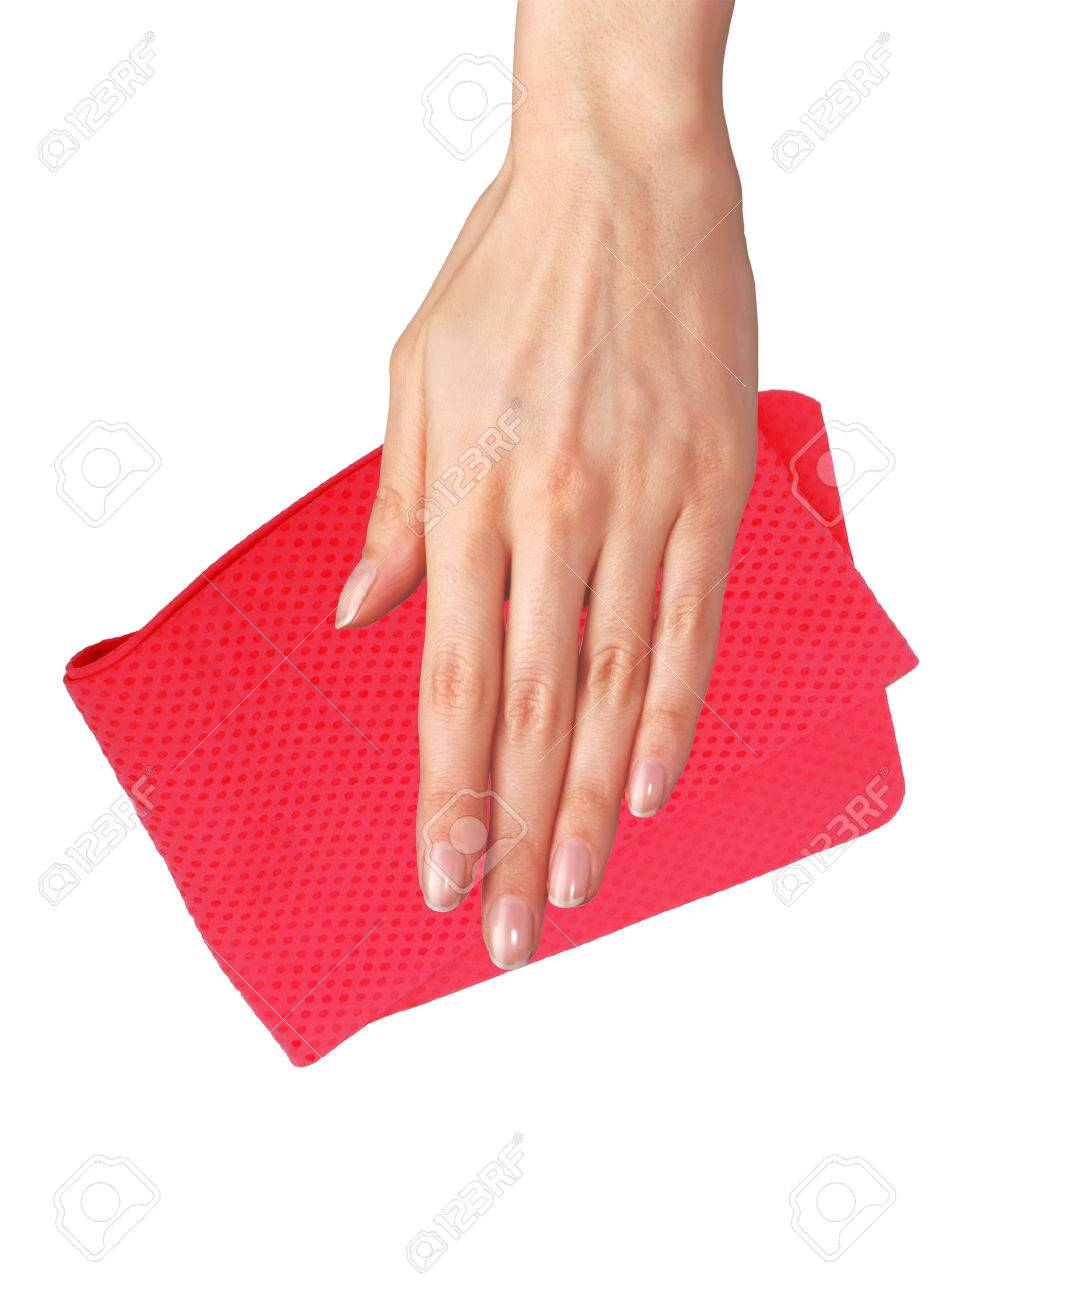 Hand wiping surface with red rag isolated on white Stock Photo - 27215310